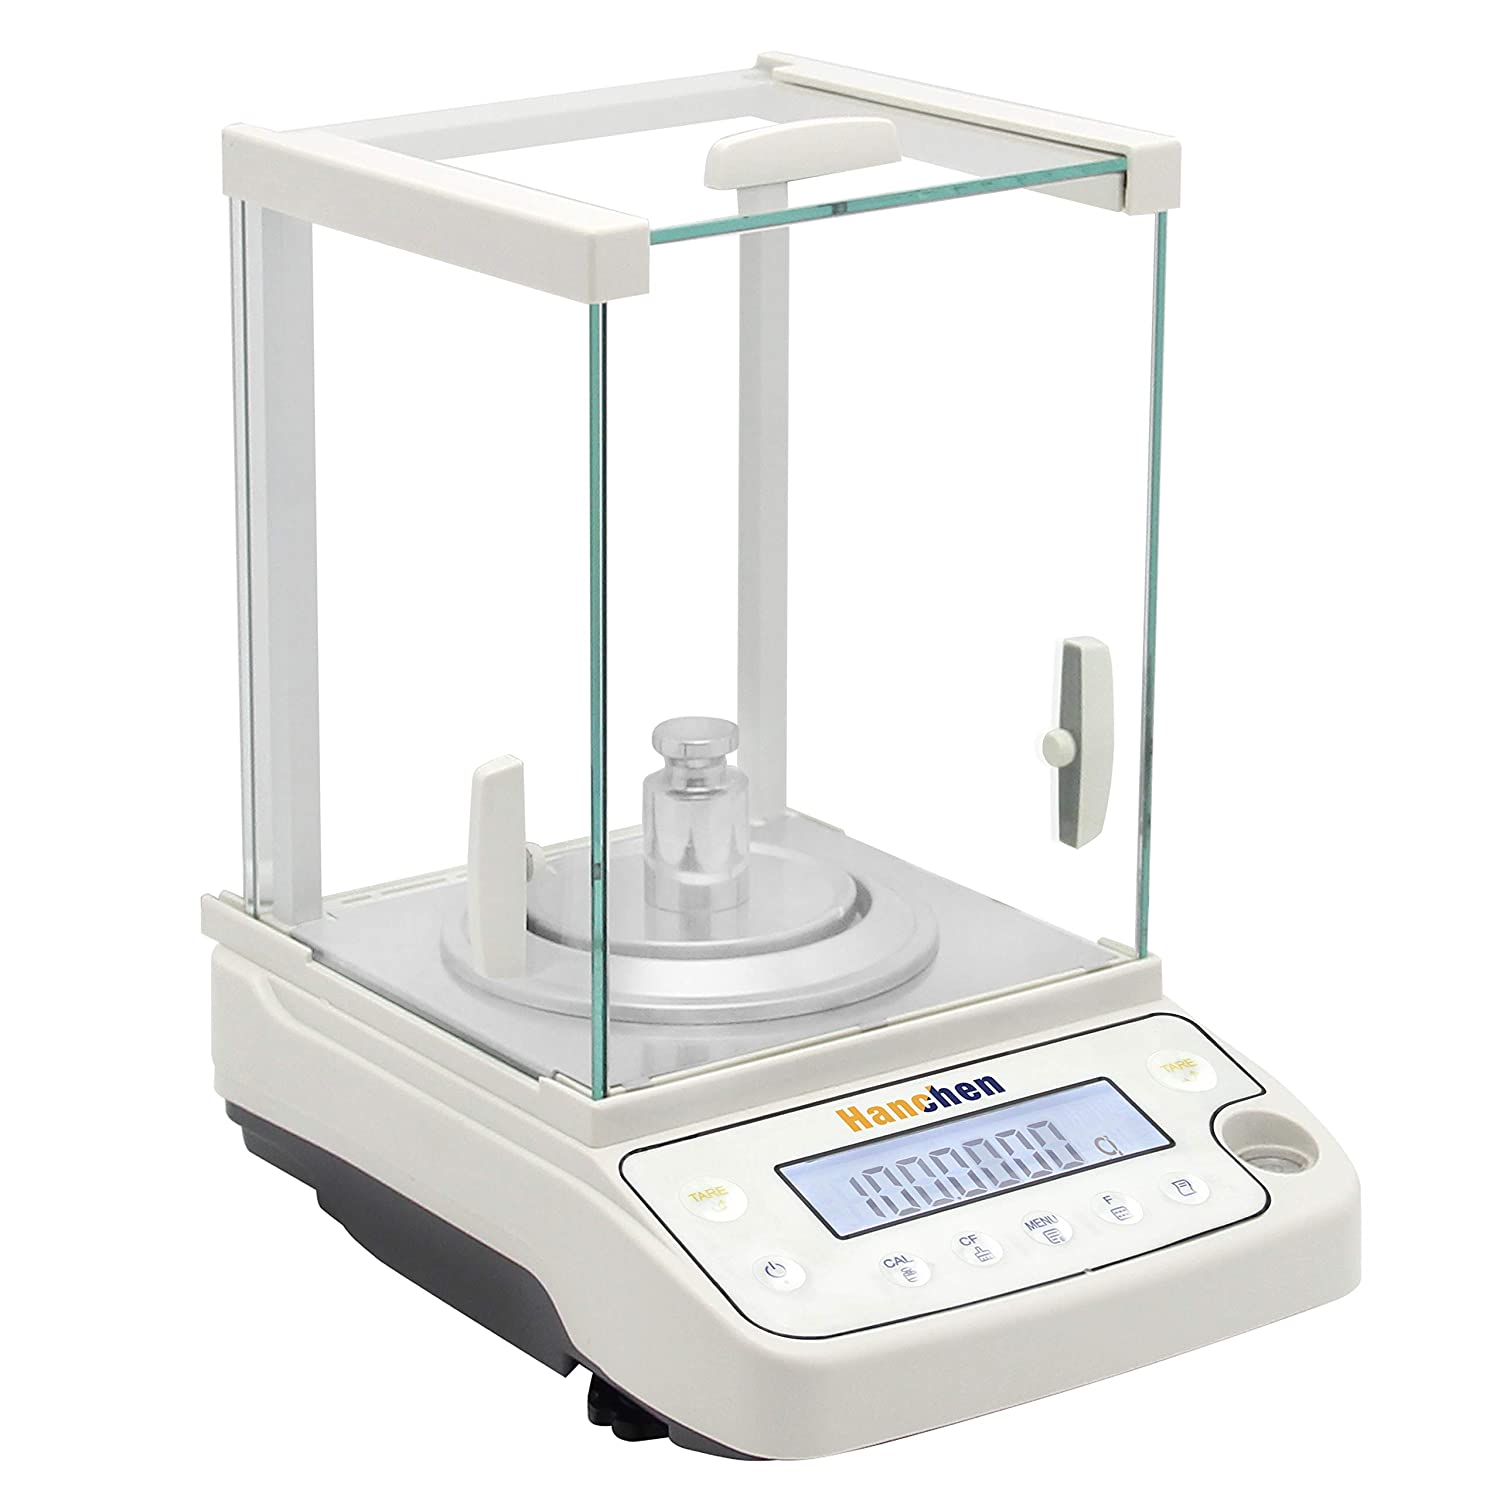 Hanchen Analytical Balance 220g/0.1mg Precise Electronic Scale 0.0001g Digital Balance for Jewelry Store Lab Pharmacy Chemical Plant (220g/0.1mg)